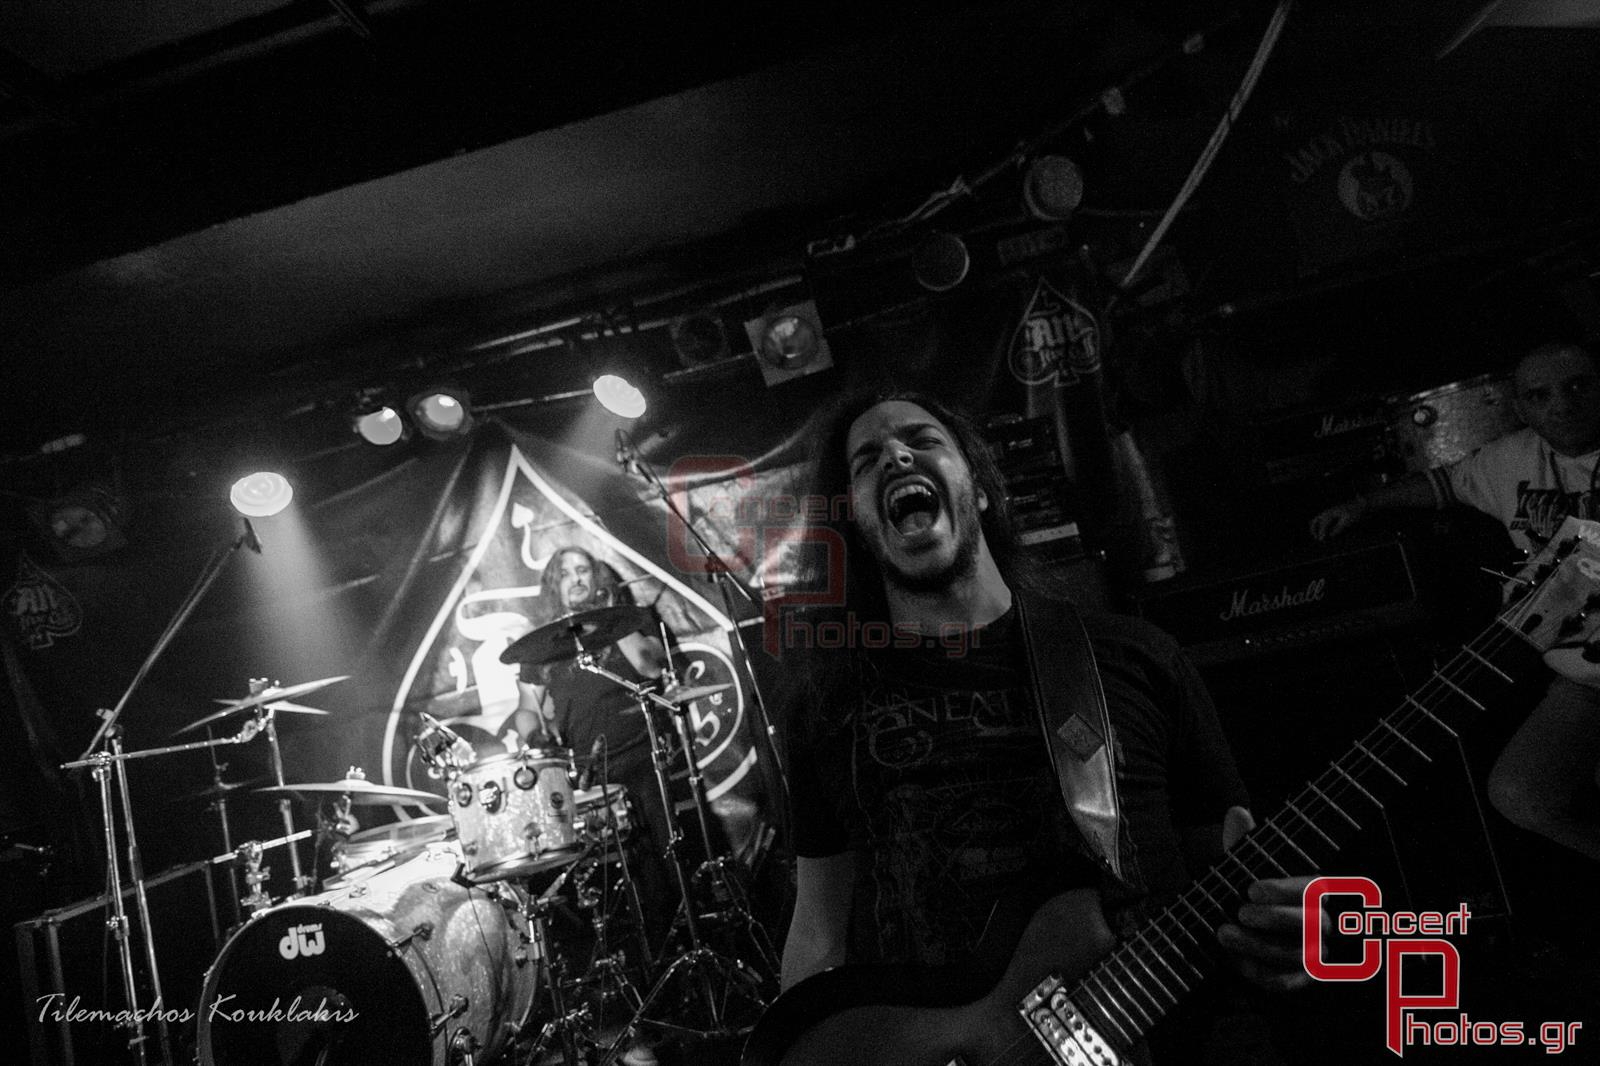 Nightstalker-Nightstalker AN Club photographer:  - concertphotos_-18